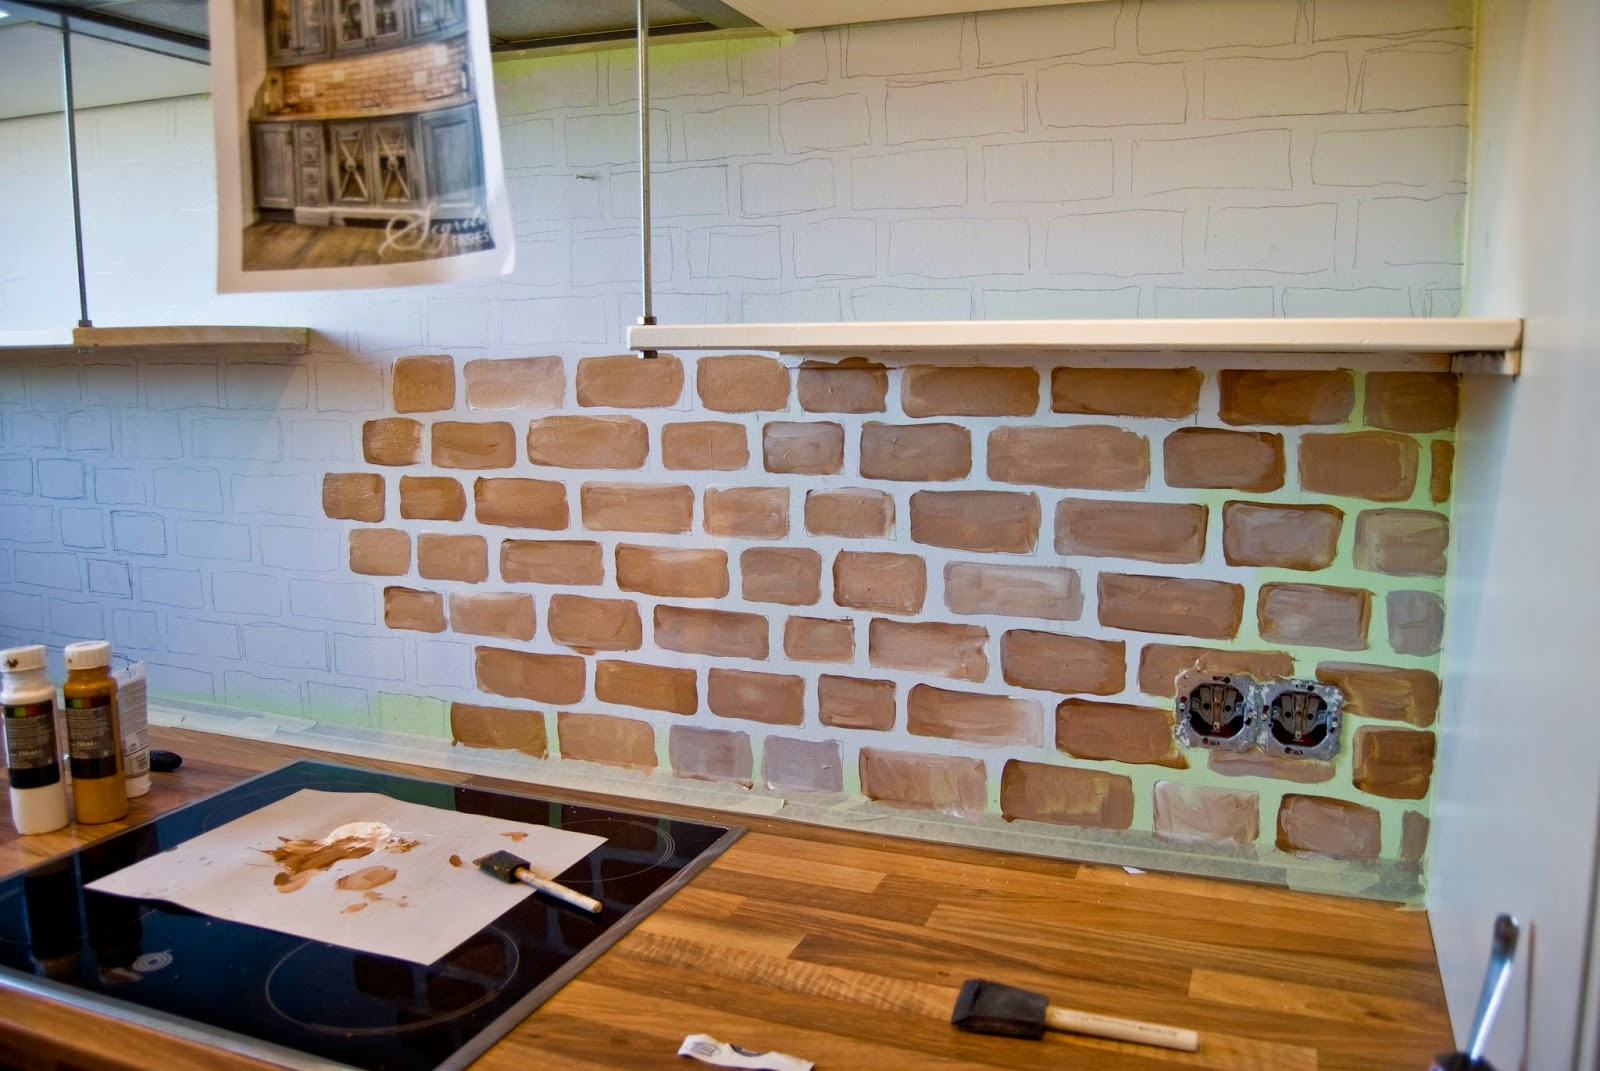 so i painted a fake brick wall backsplash on my walls i simply used